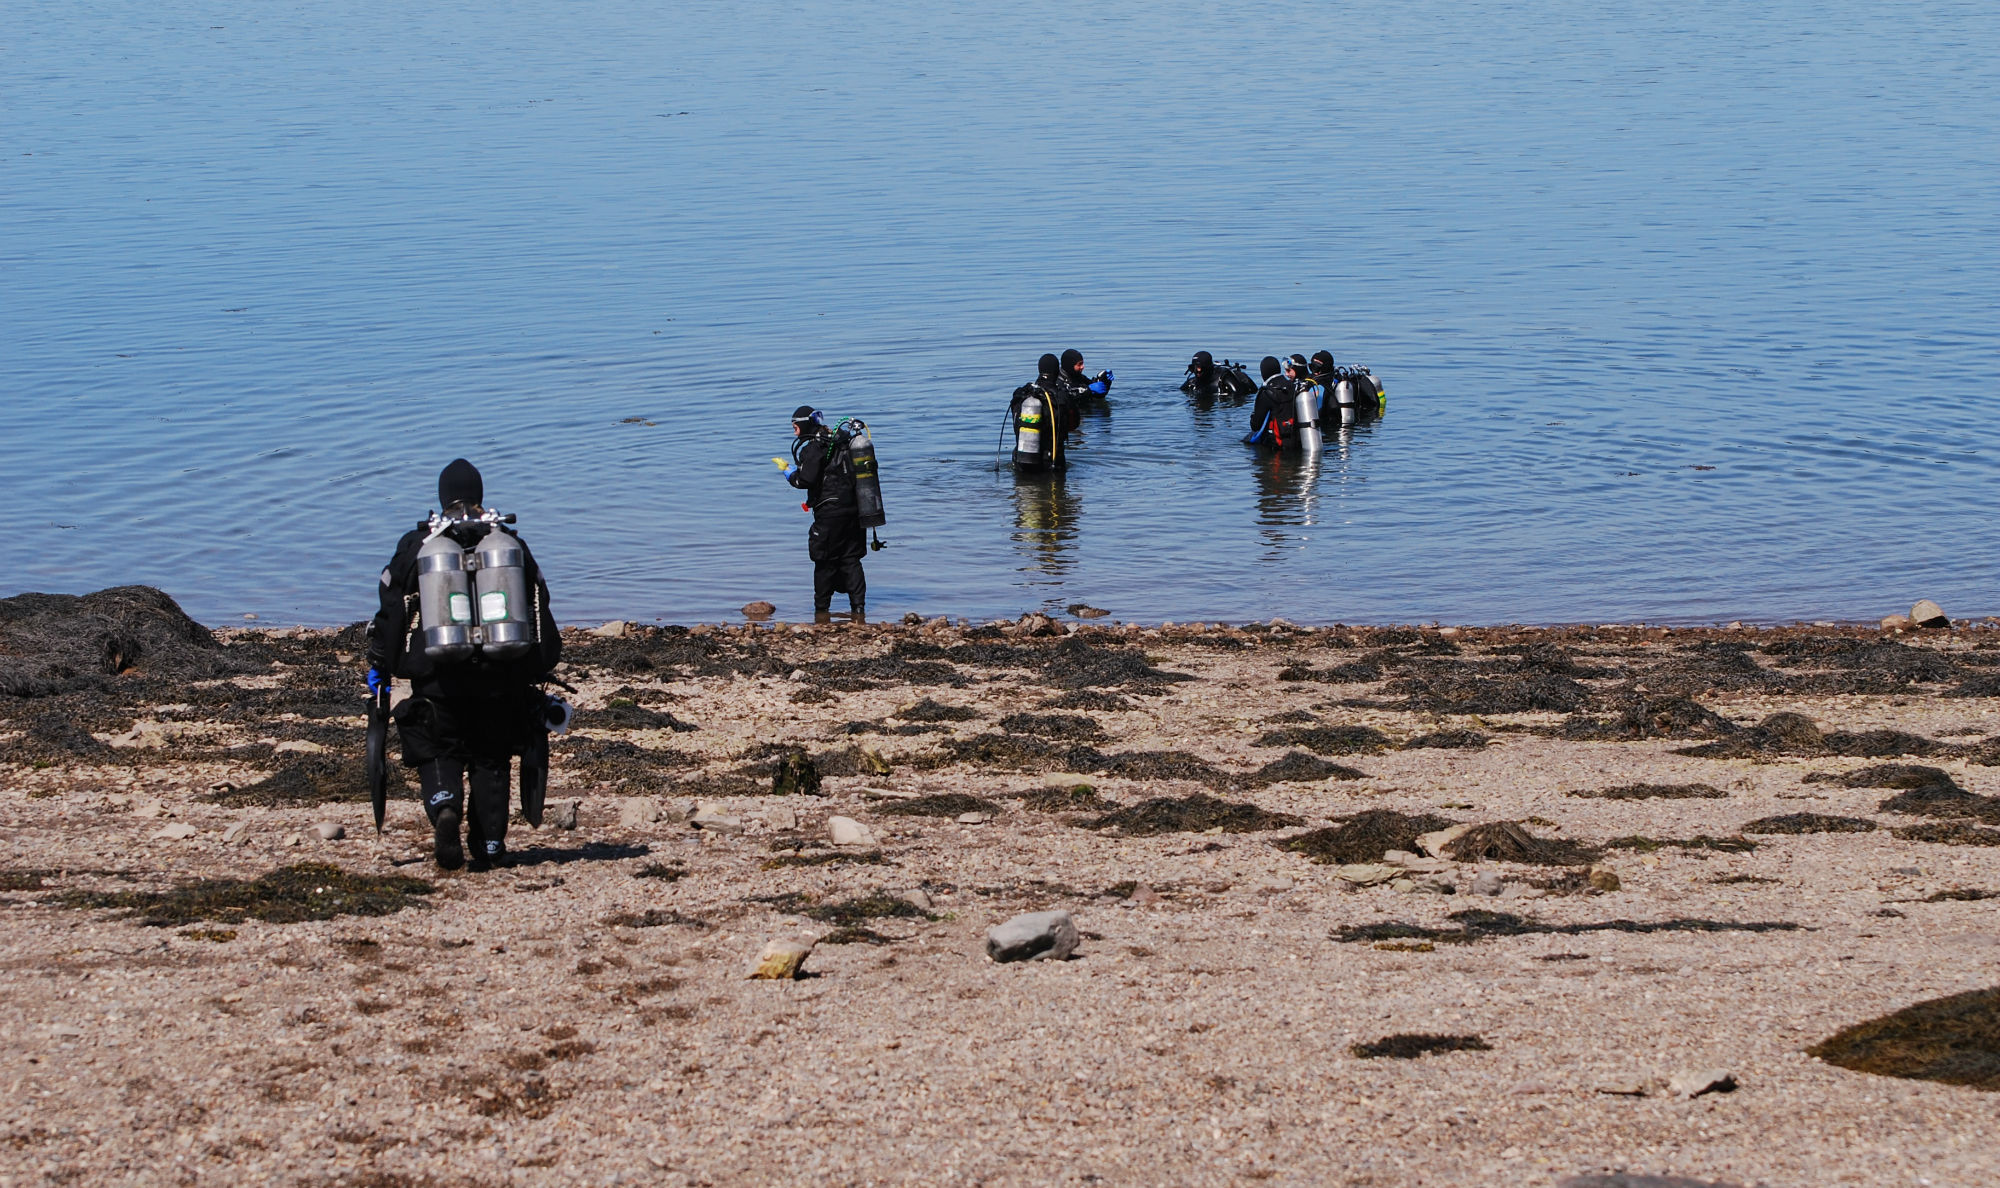 Some Scuba Divers Entering the Bay of Fundy at Cancat Beach, Deer Island